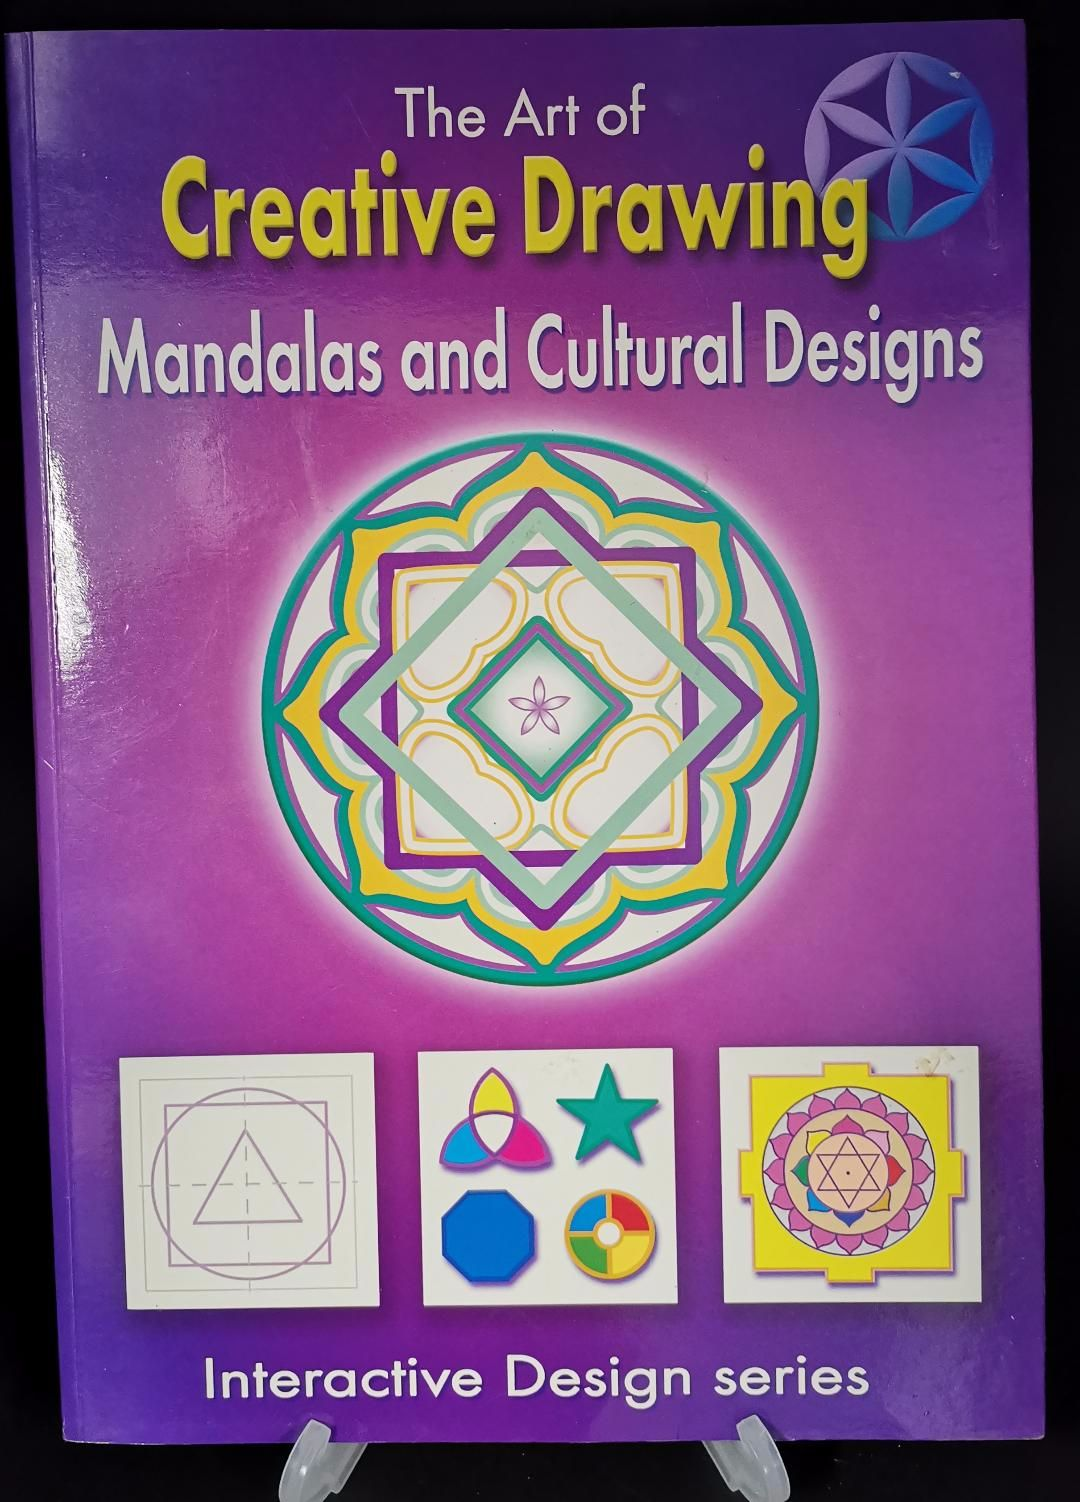 The Art of Creative Drawing : Mandalas and Cultural designs